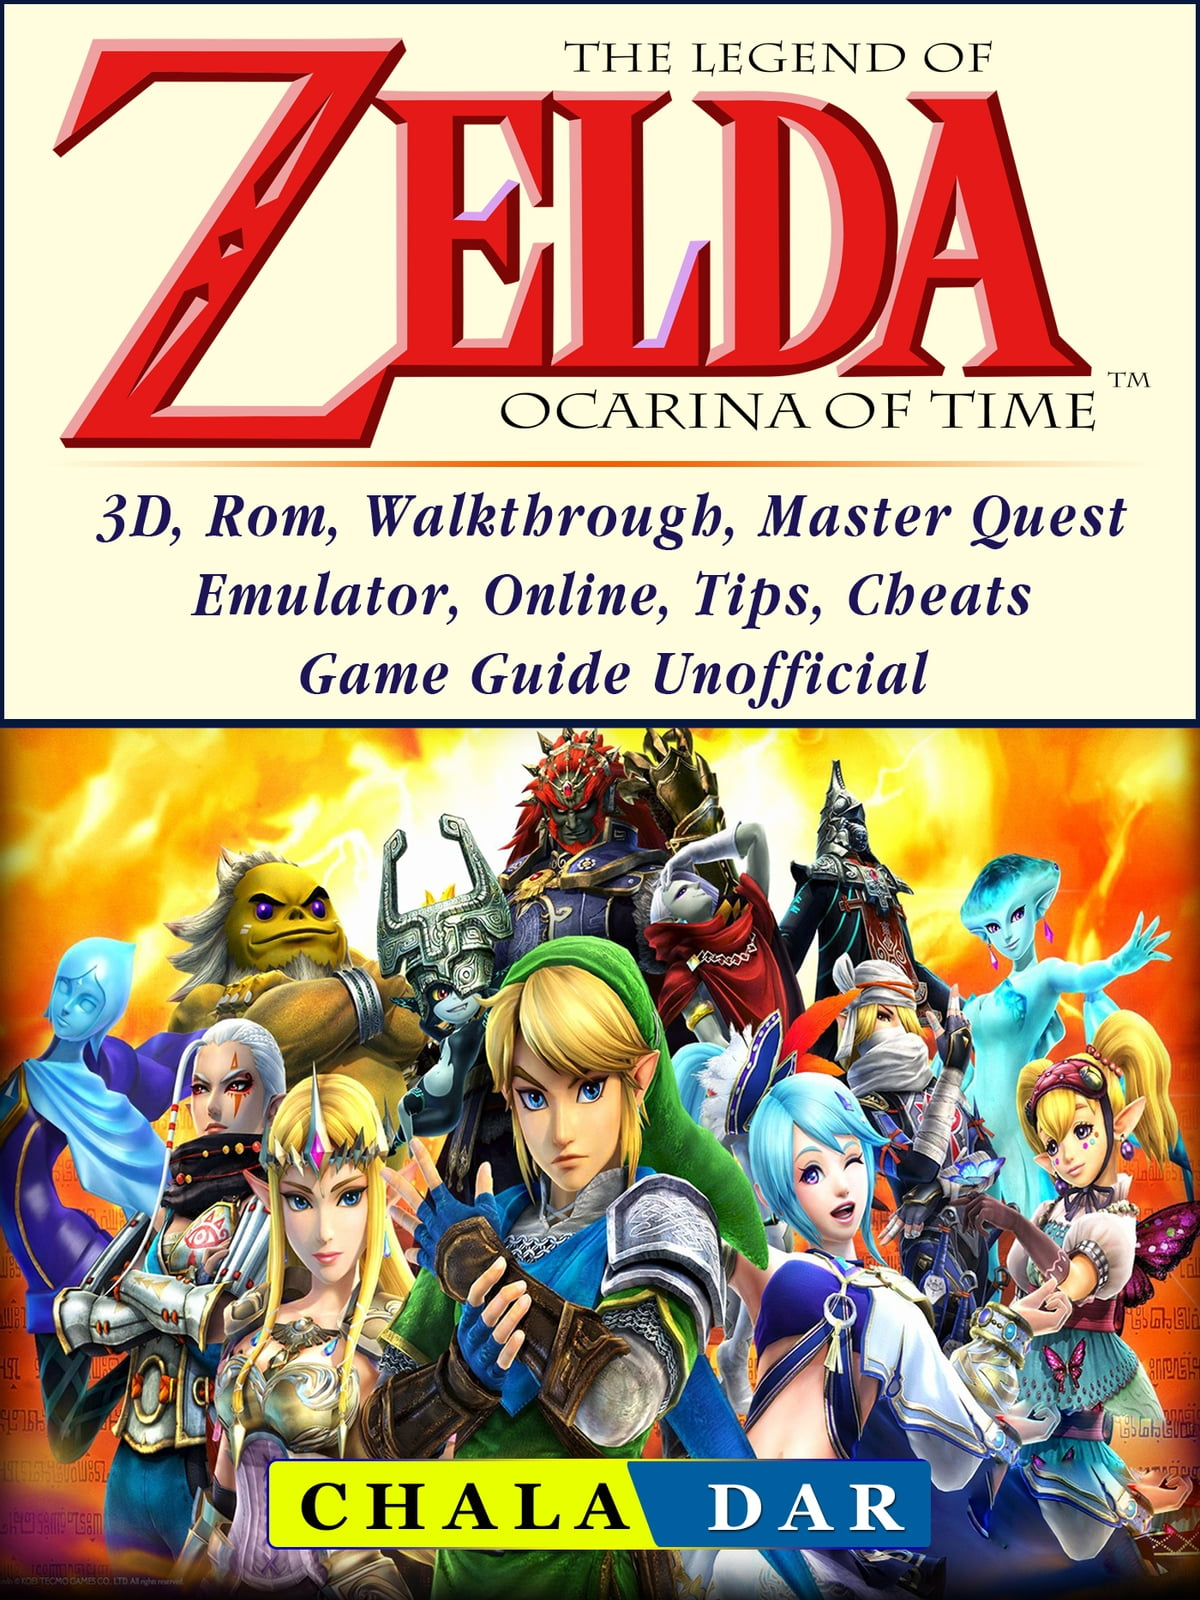 The Legend of Zelda Ocarina of Time, 3D, Rom, Walkthrough, Master Quest,  Emulator, Online, Tips, Cheats, Game Guide Unofficial ebook by Chala Dar -